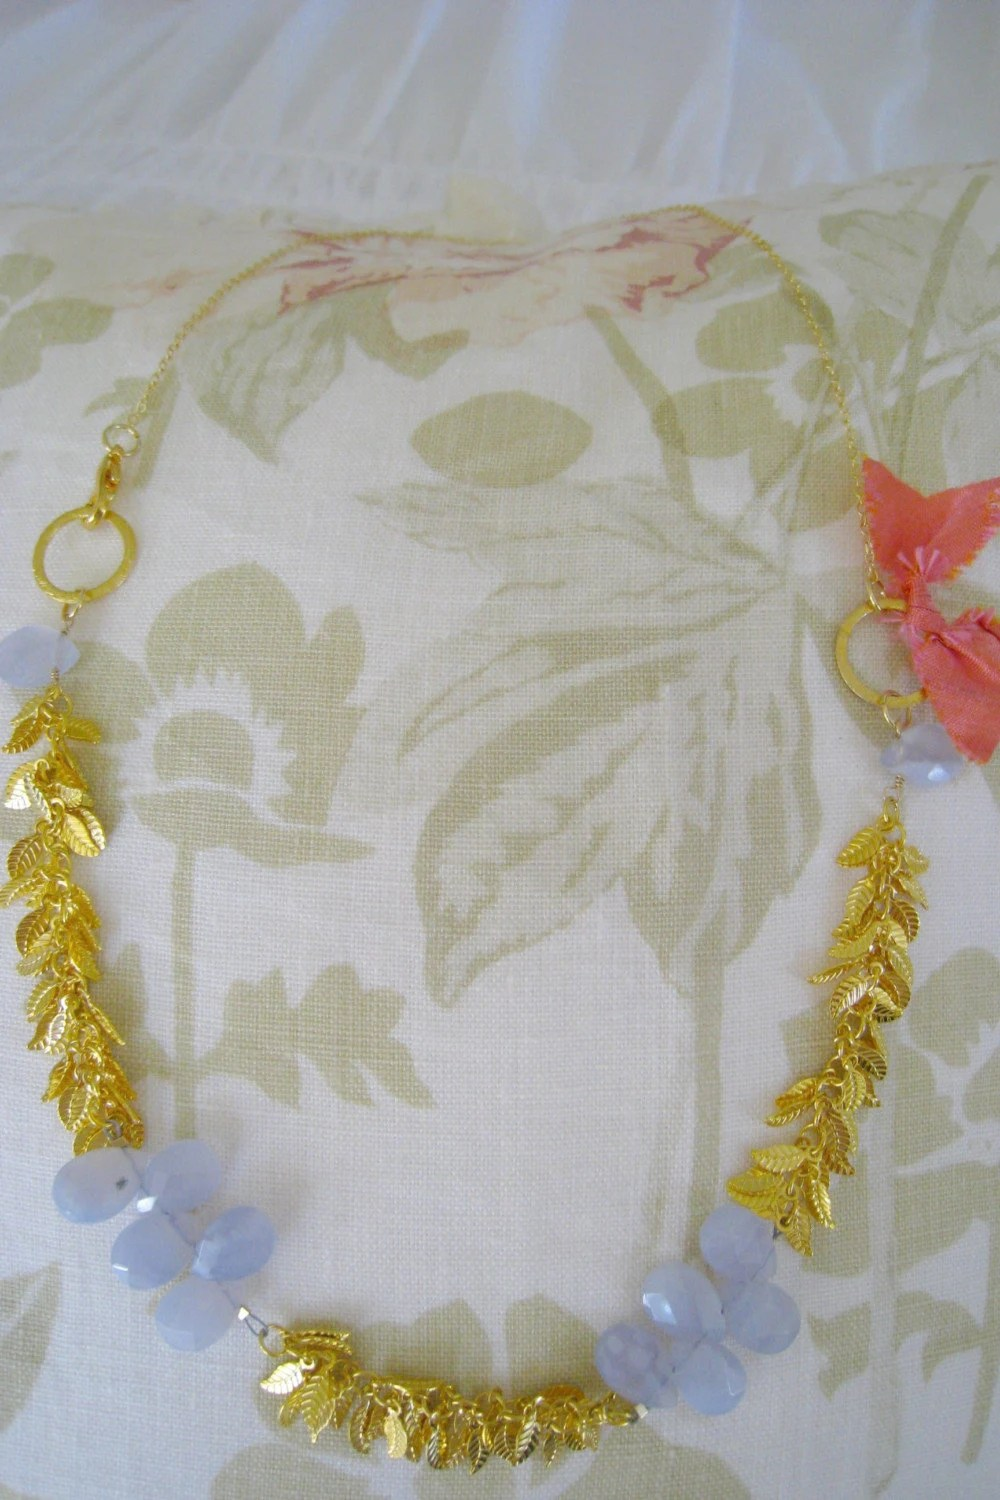 gold leaf chain with light blue chalcedony gemstone necklace